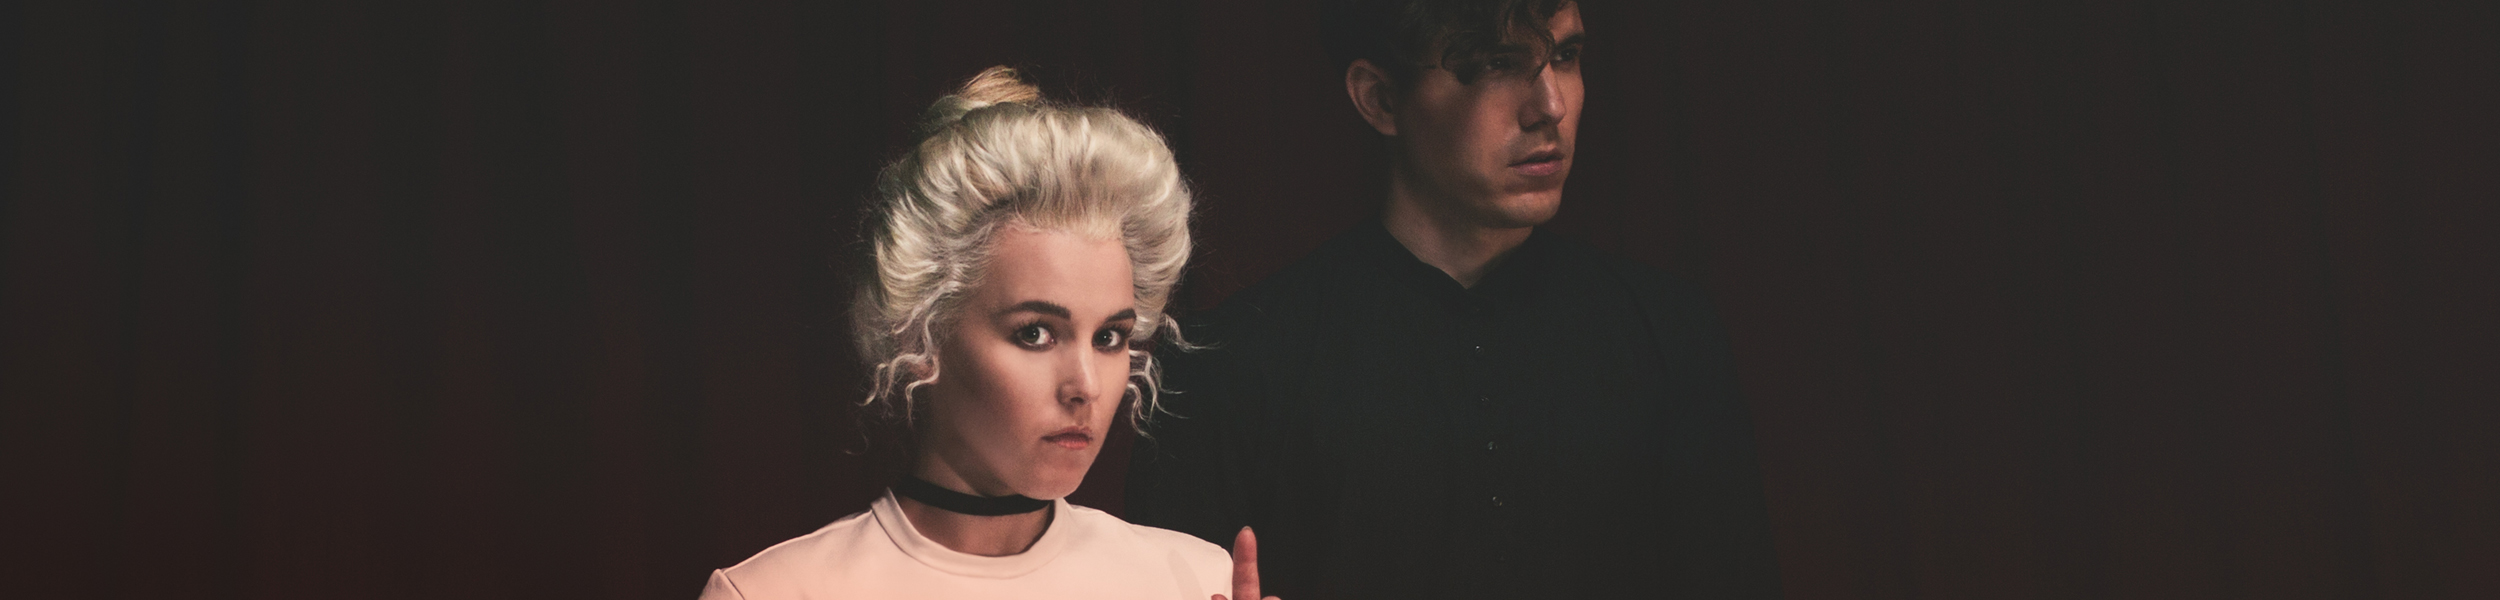 Purity Ring - Out Now: Purity Ring - another eternity